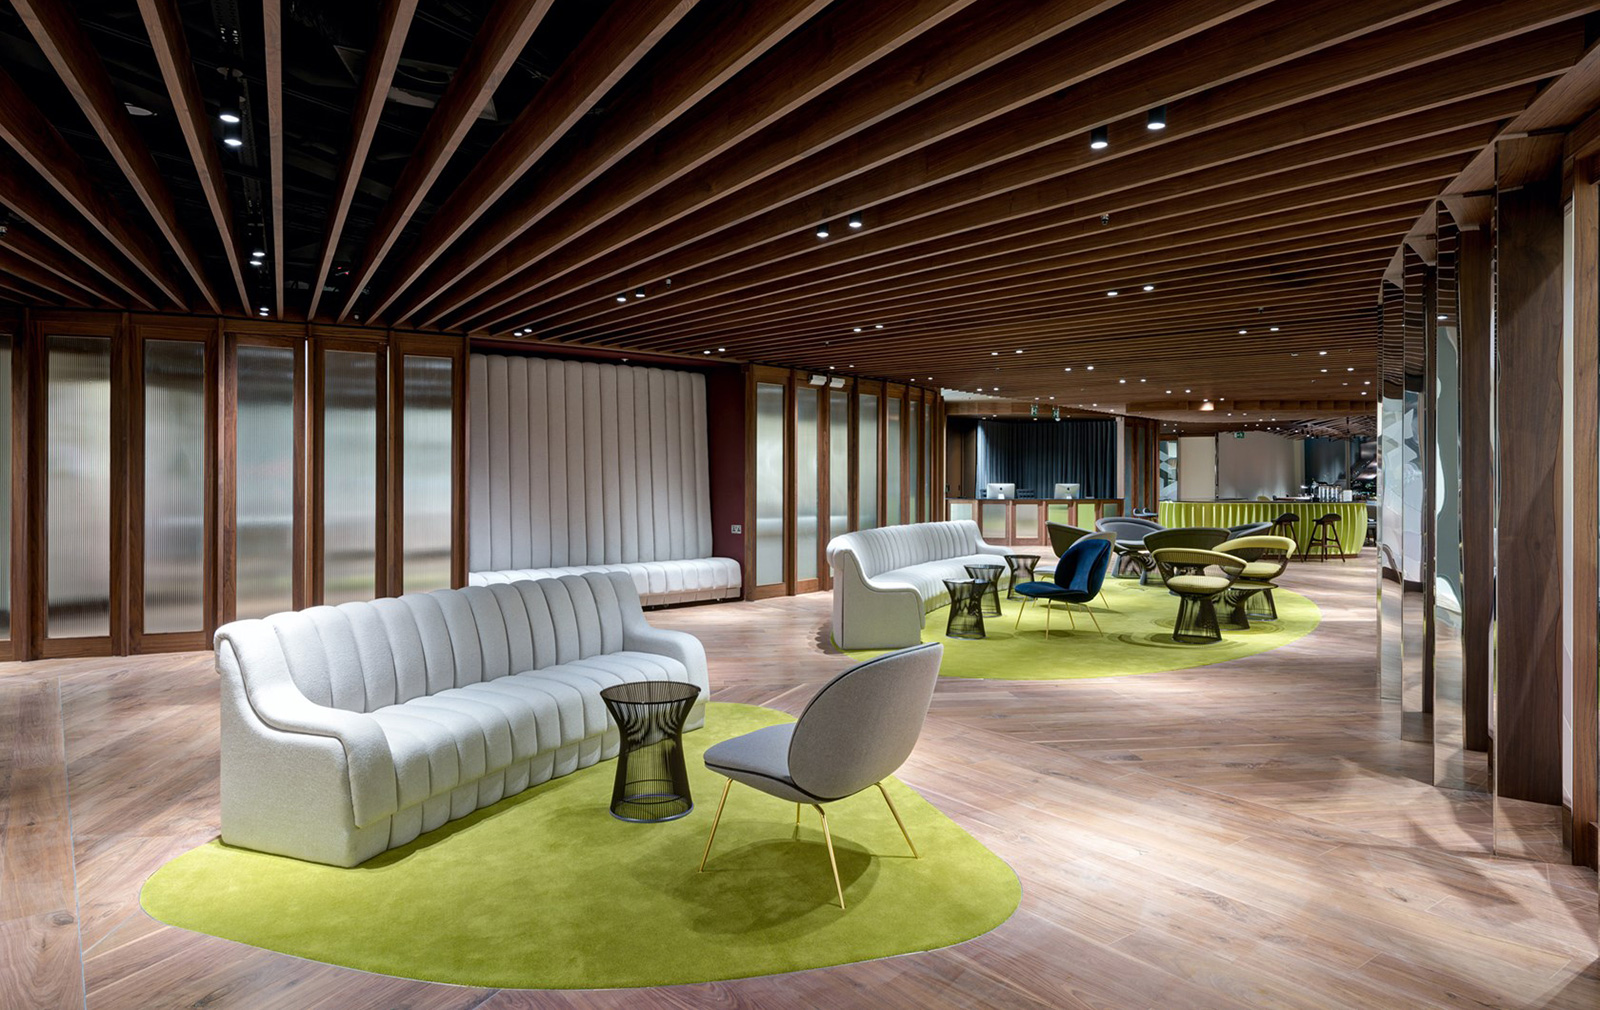 London coworking space at The Shard, created by The Office Group